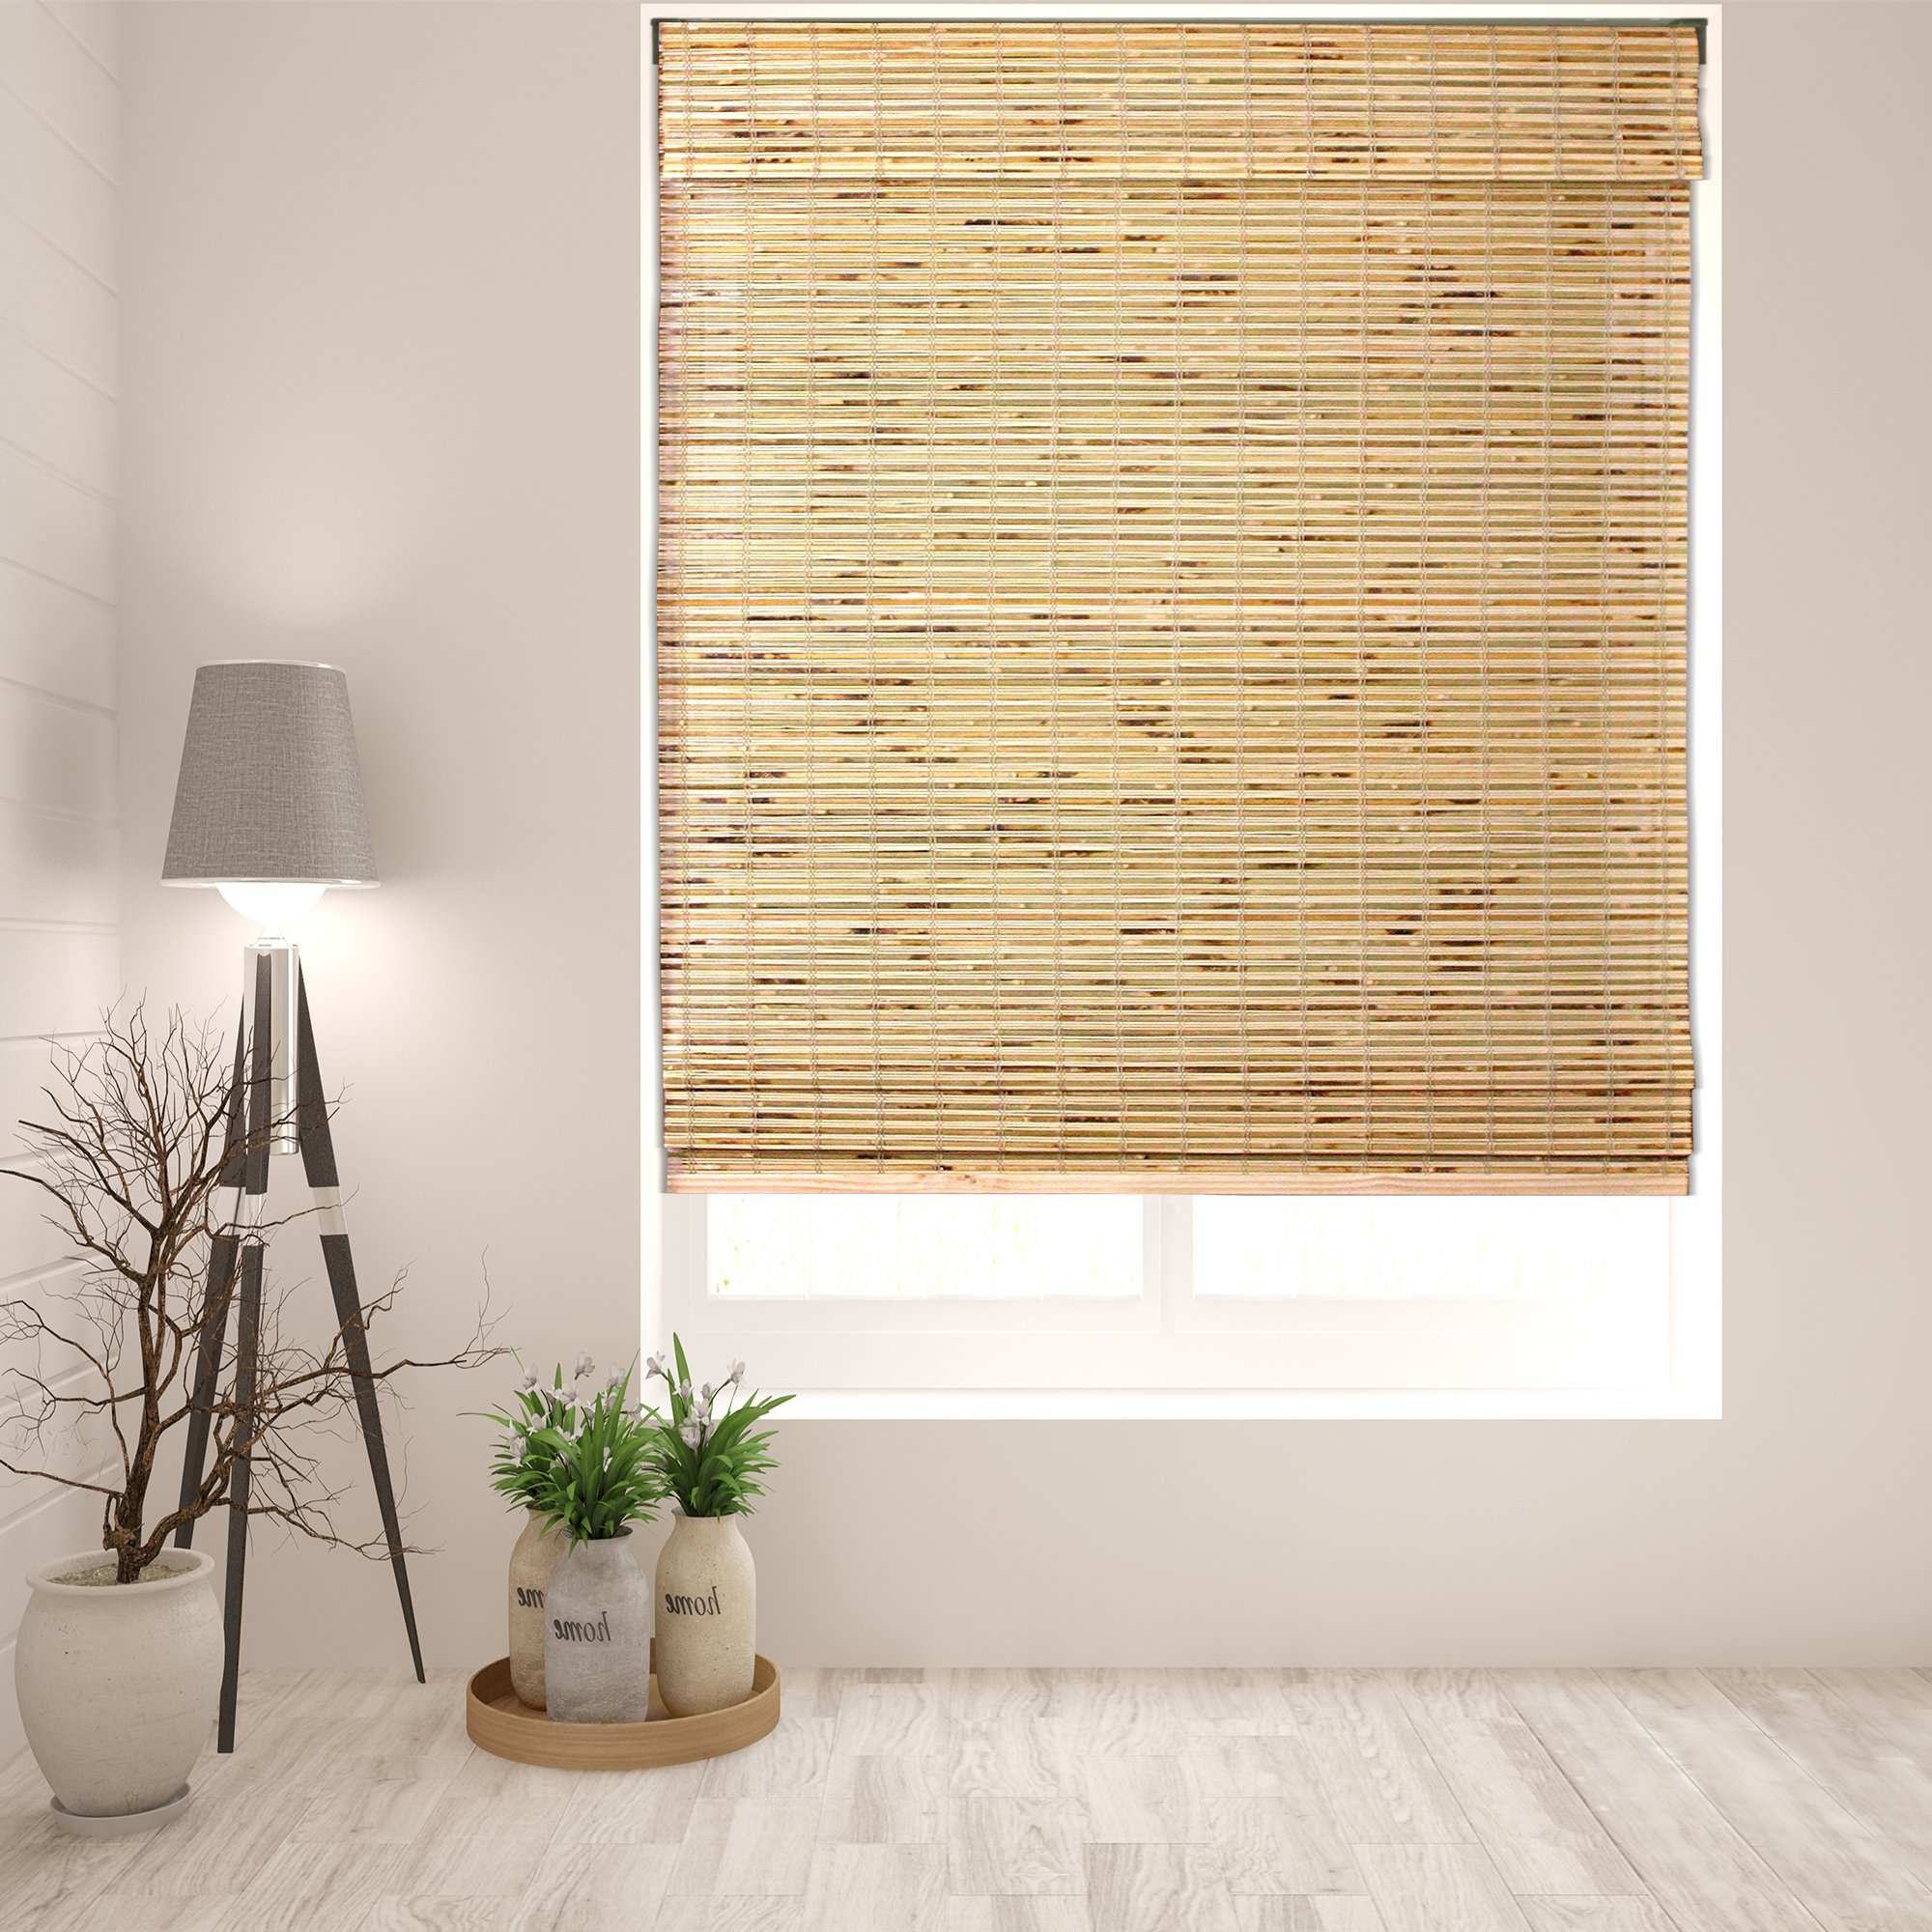 Arlo Blinds Cordless Petite Rustique Bamboo Roman Shades Blinds - Size: 34.5'' W x 74'' H, Innovative Cordless Lift System ensures Safety and Ease of use. by Arlo Blinds